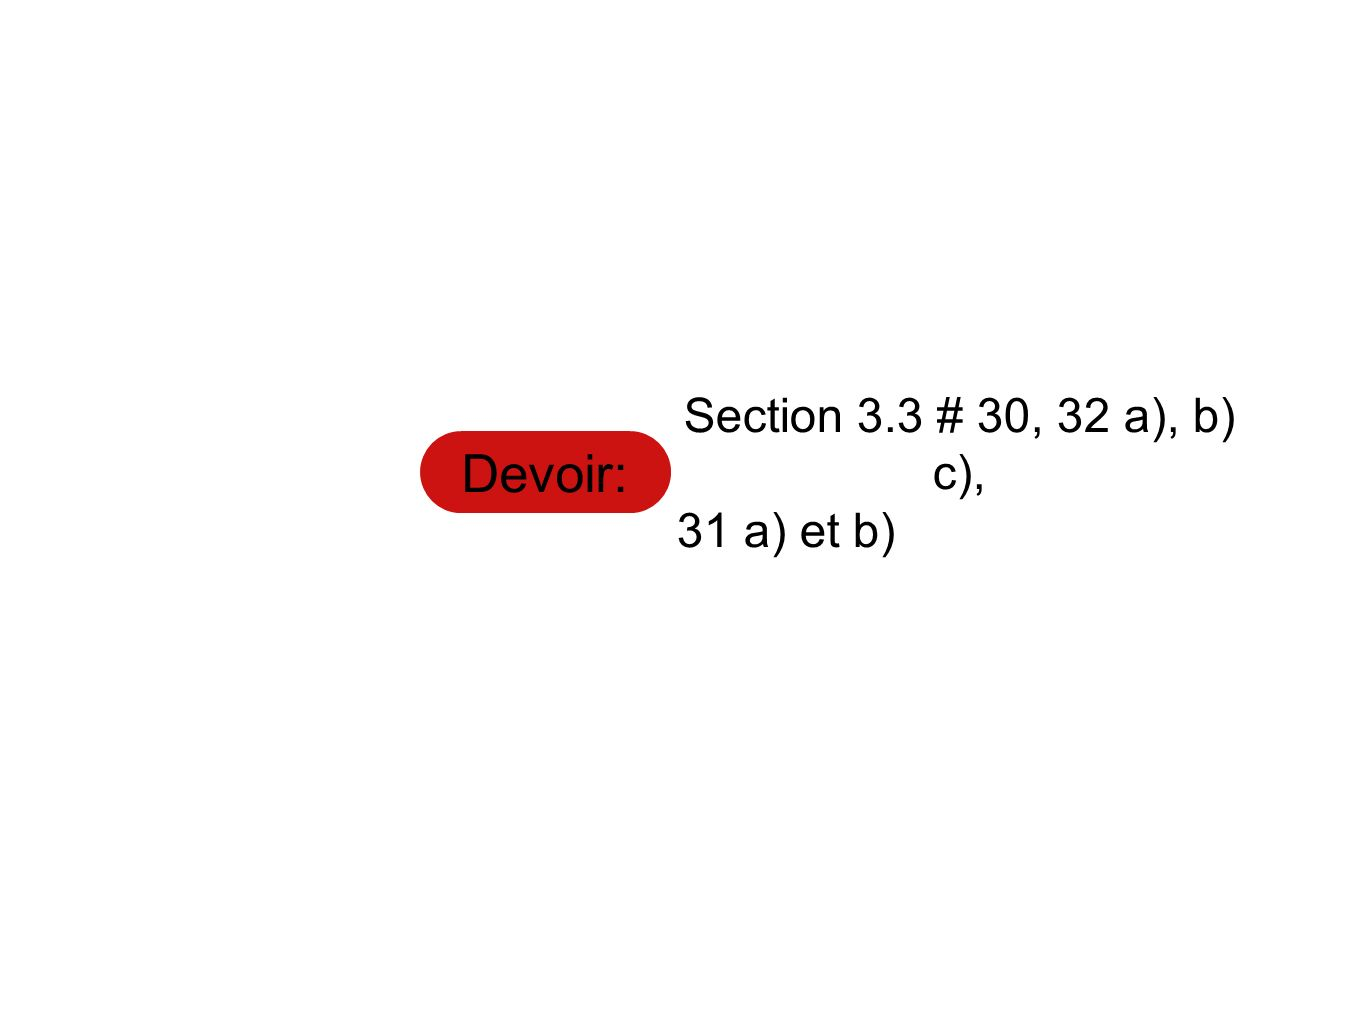 Devoir: Section 3.3 # 30, 32 a), b) c), 31 a) et b)